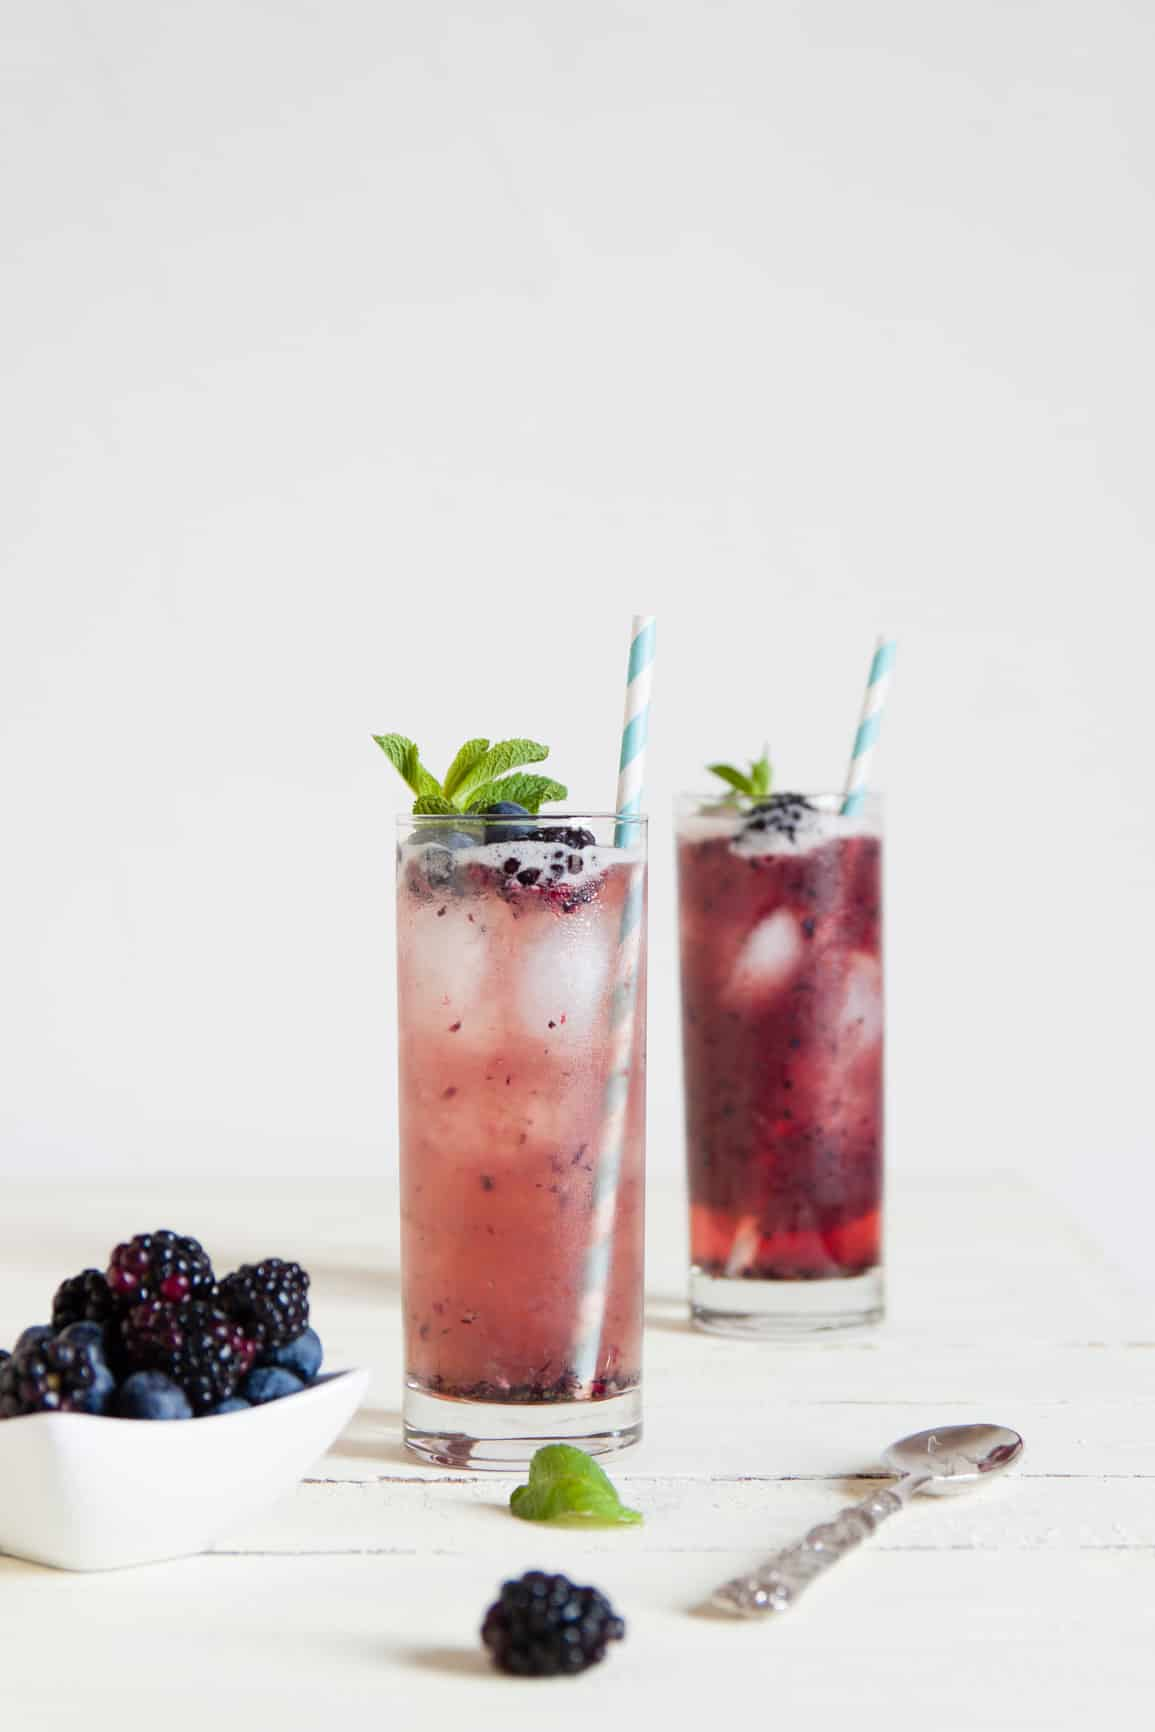 An easy recipe of Mixed Berry Mojitos. It's a simple yet refreshing mojito cocktail to make for a crowd at parties. Blended with blueberries, blackberries, fresh mint, vodka and lime juice, it's the perfect drink when hosting parties.